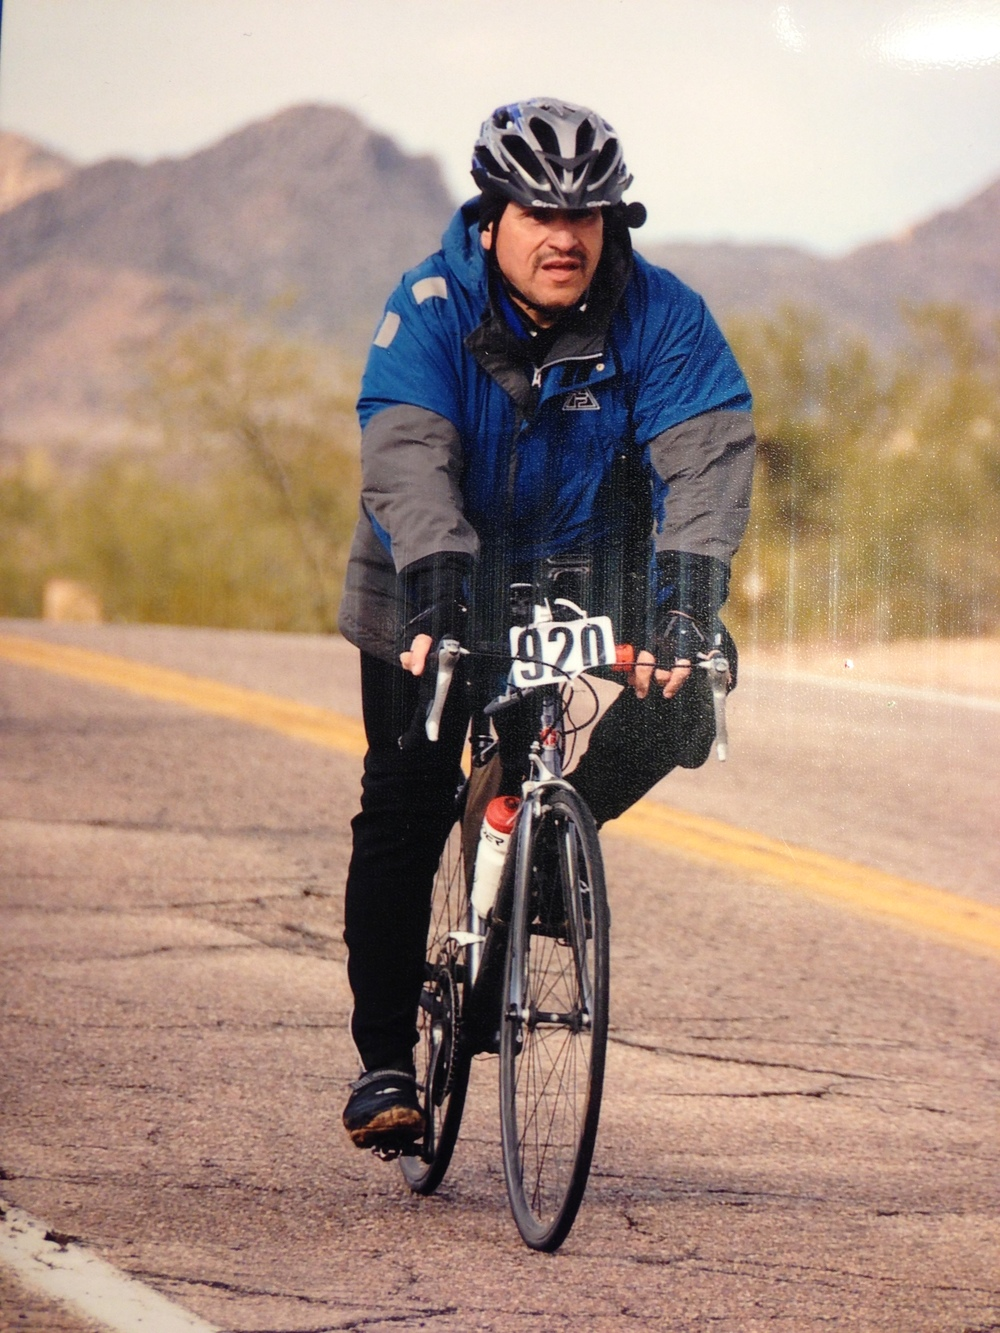 Al Martinez Riding in the 2013 Tour De Tucson